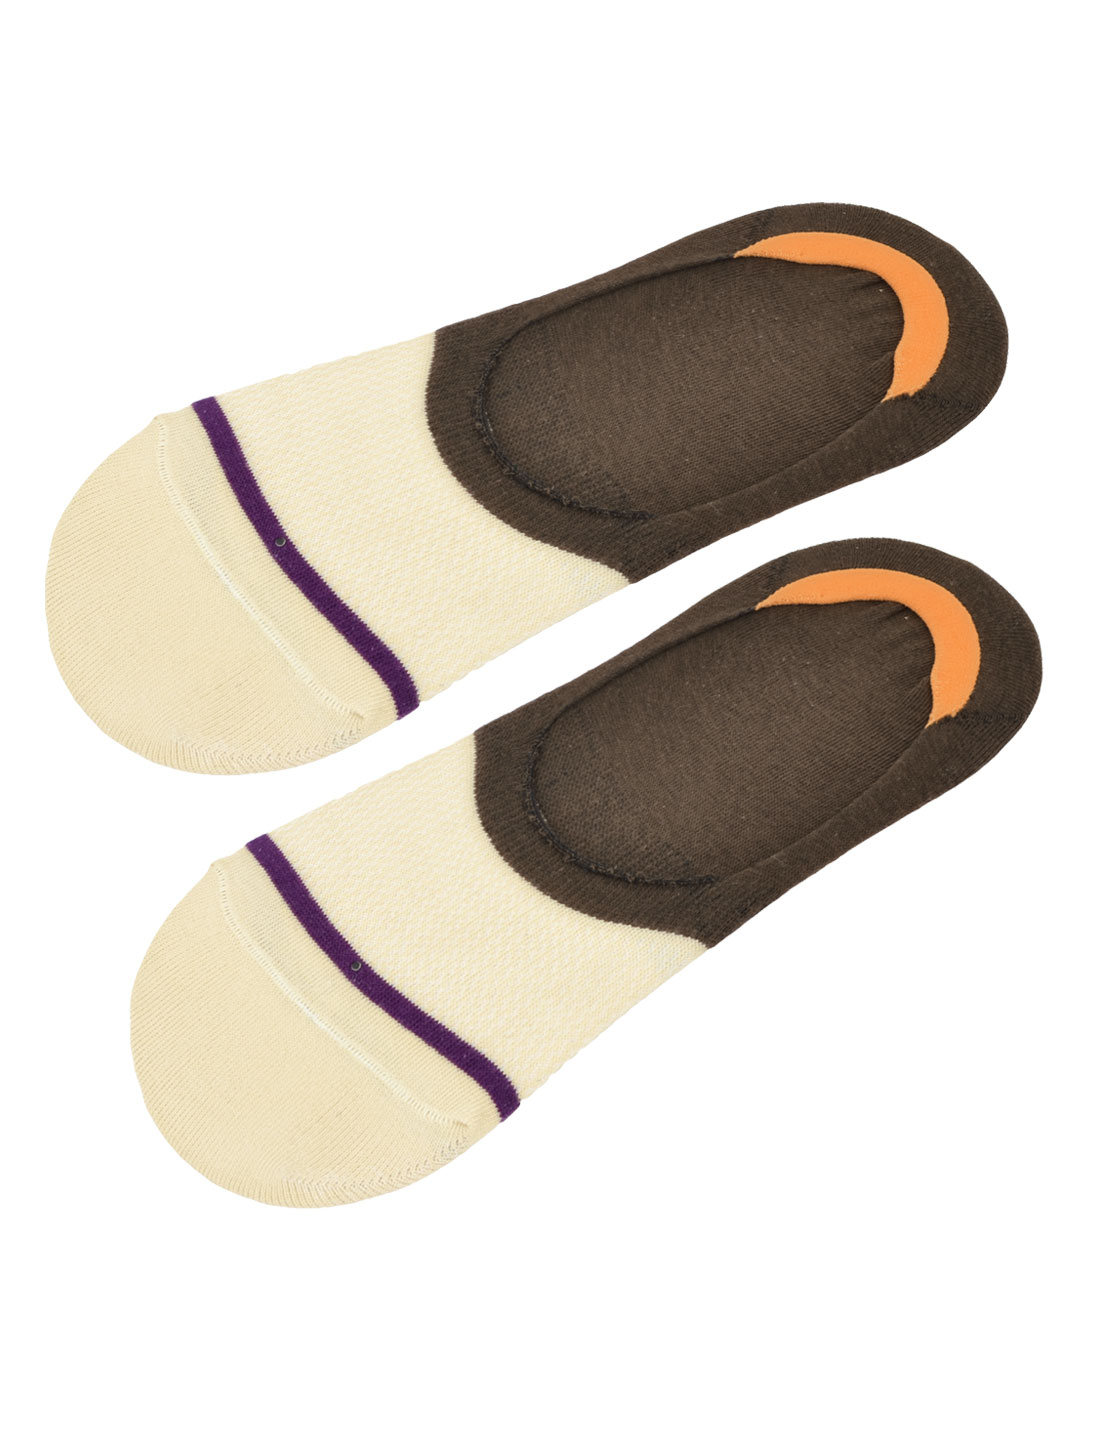 Man Stretchy Ankle No Show Casual Invisible Boat Socks Brown White Purple Pair